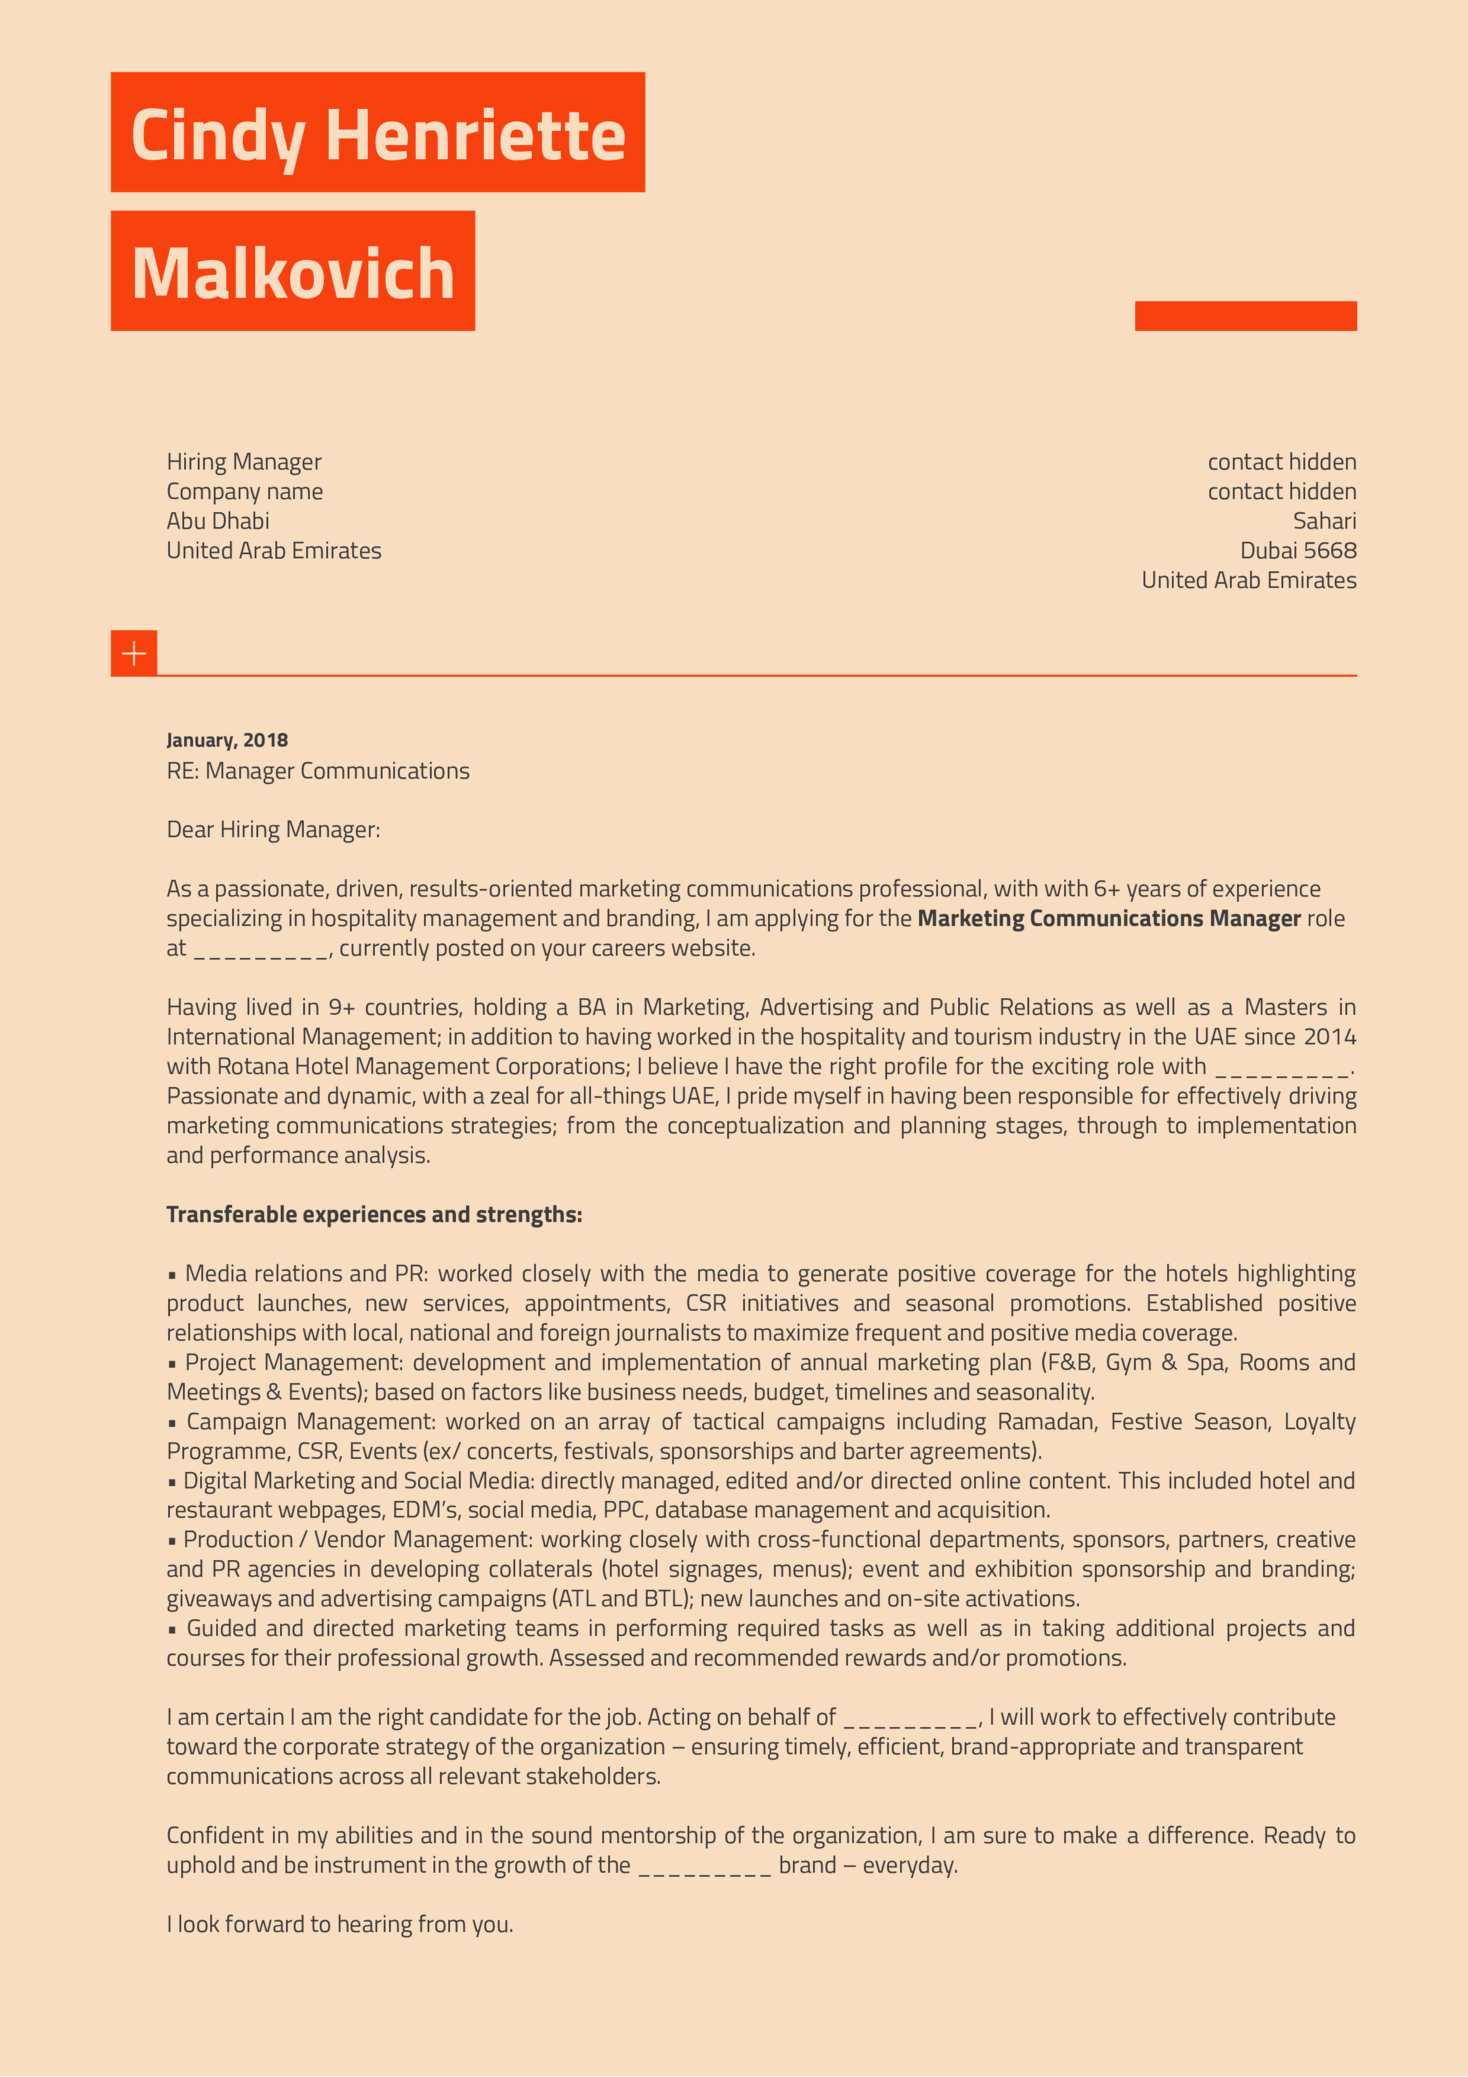 Marketing Communications Manager Cover Letter Sample (Teil 1)